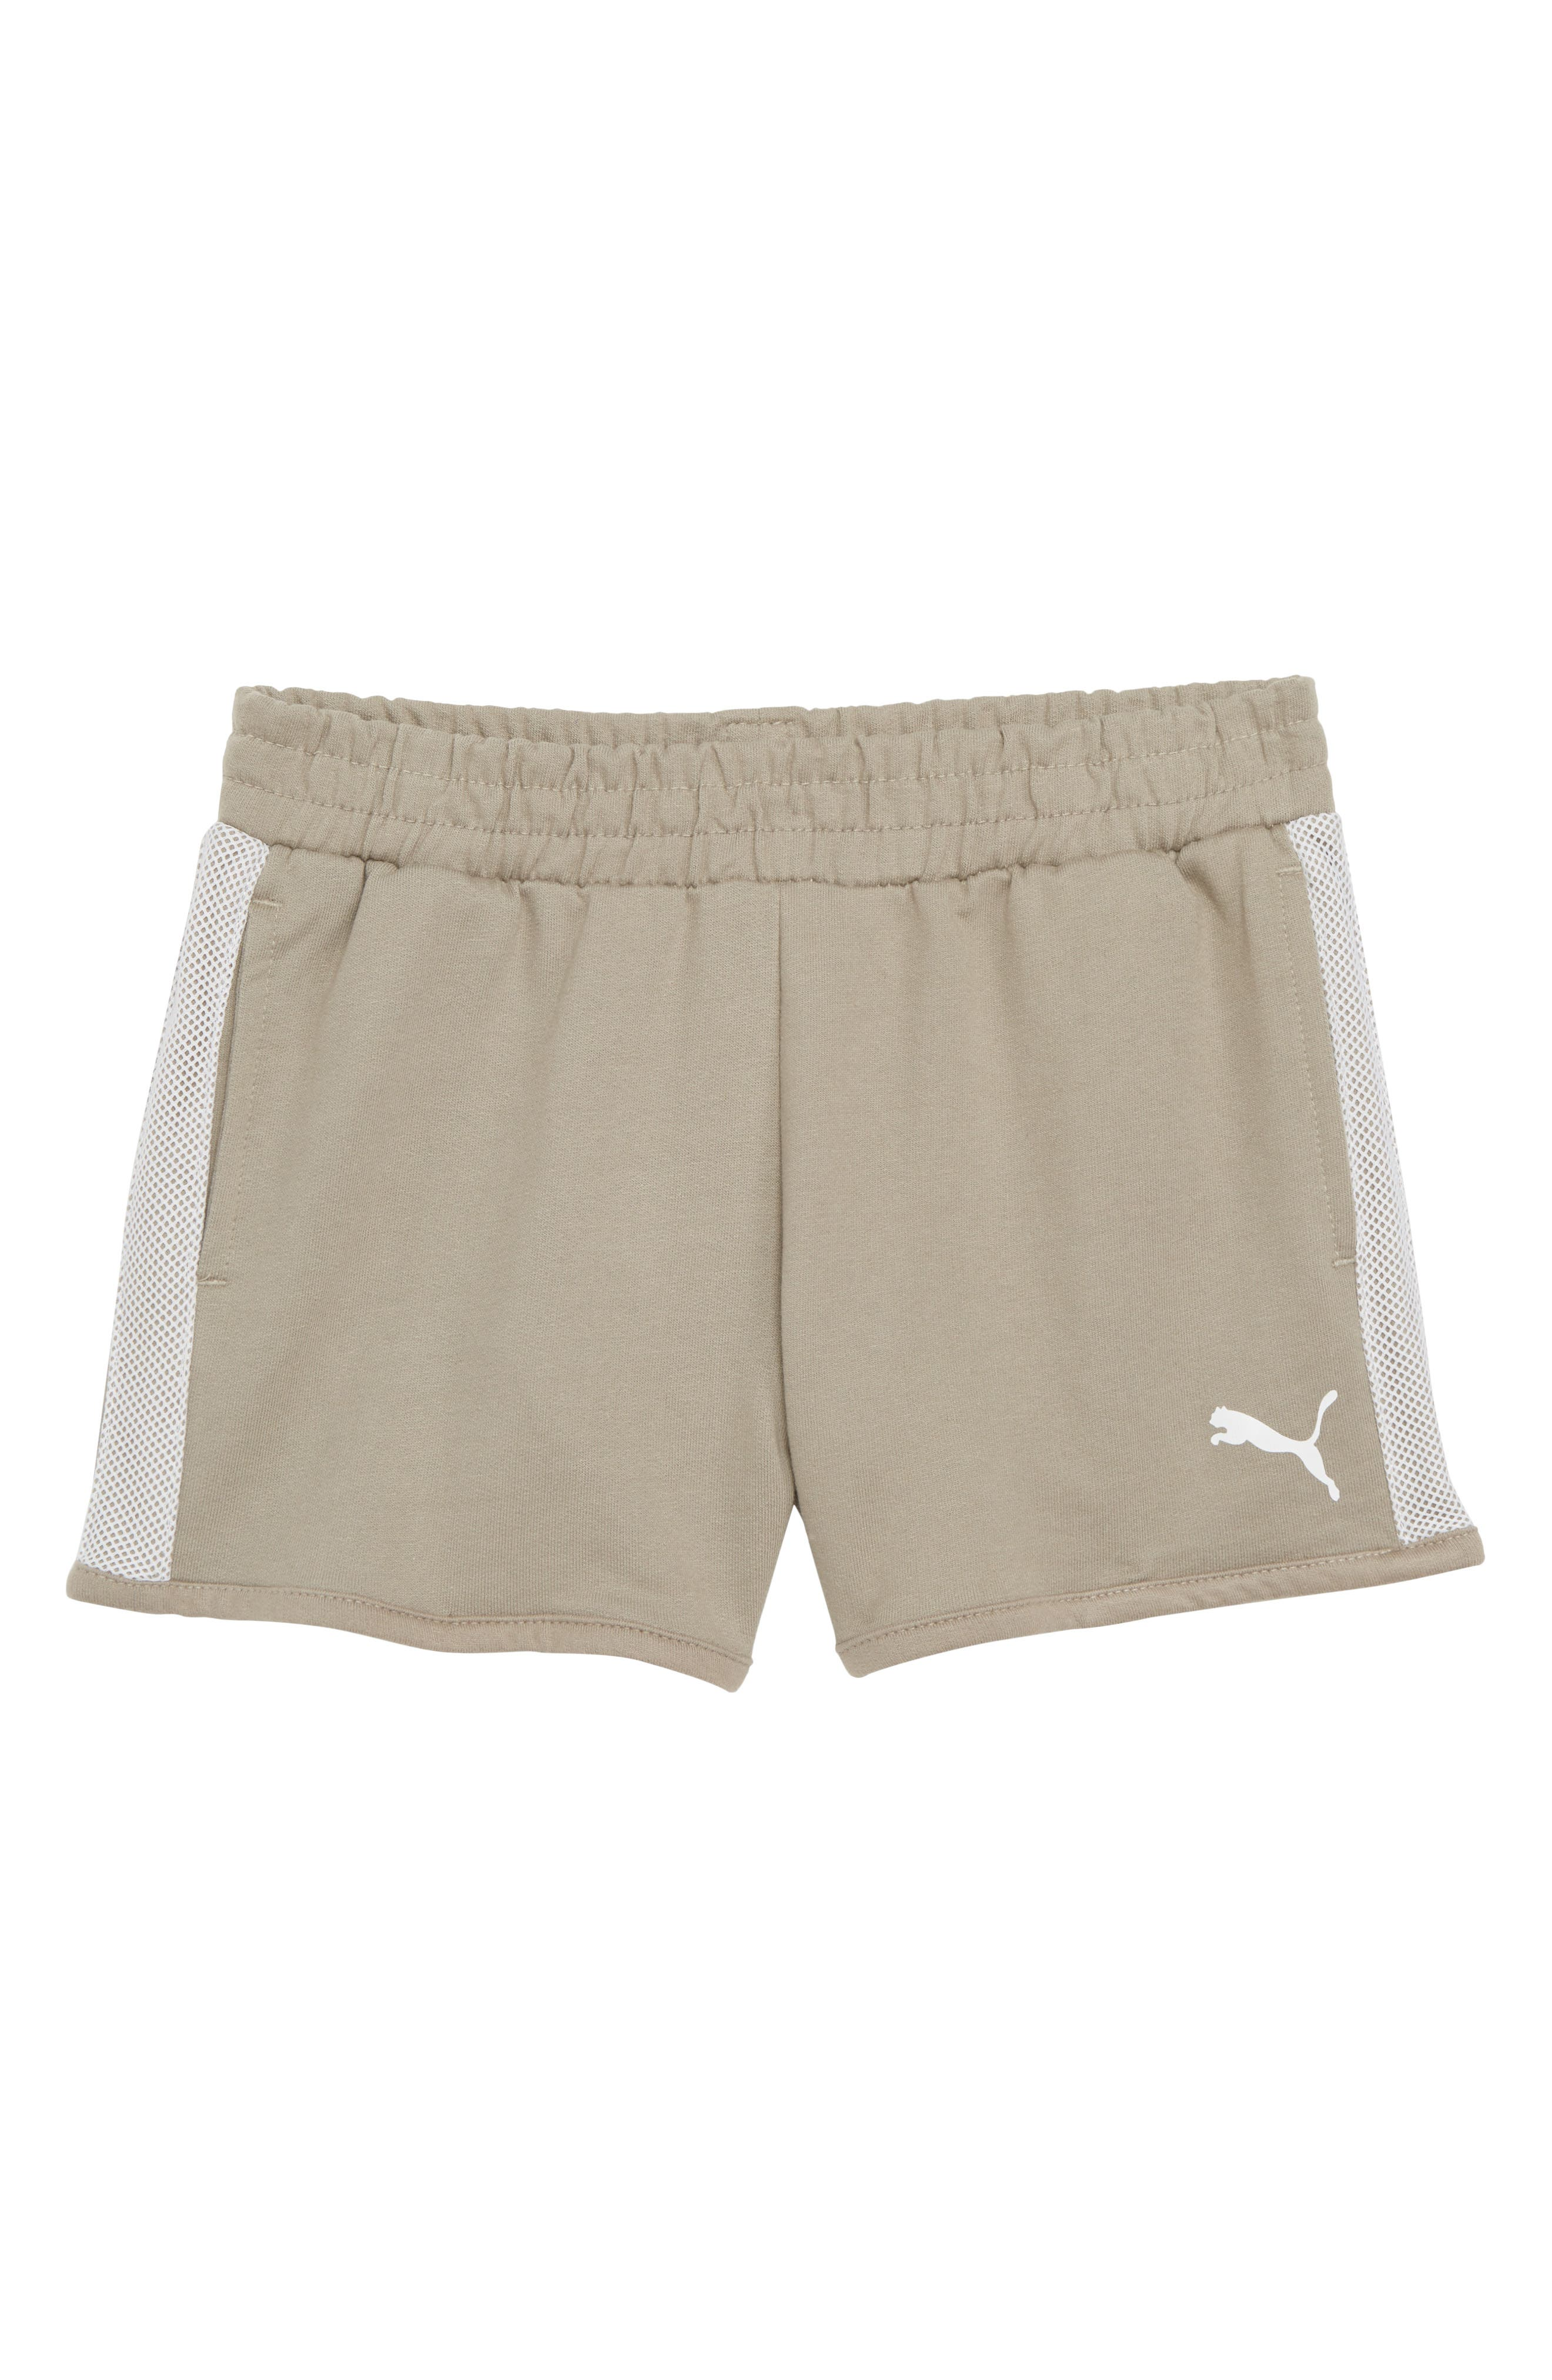 French Terry Shorts,                         Main,                         color, Rock Ridge